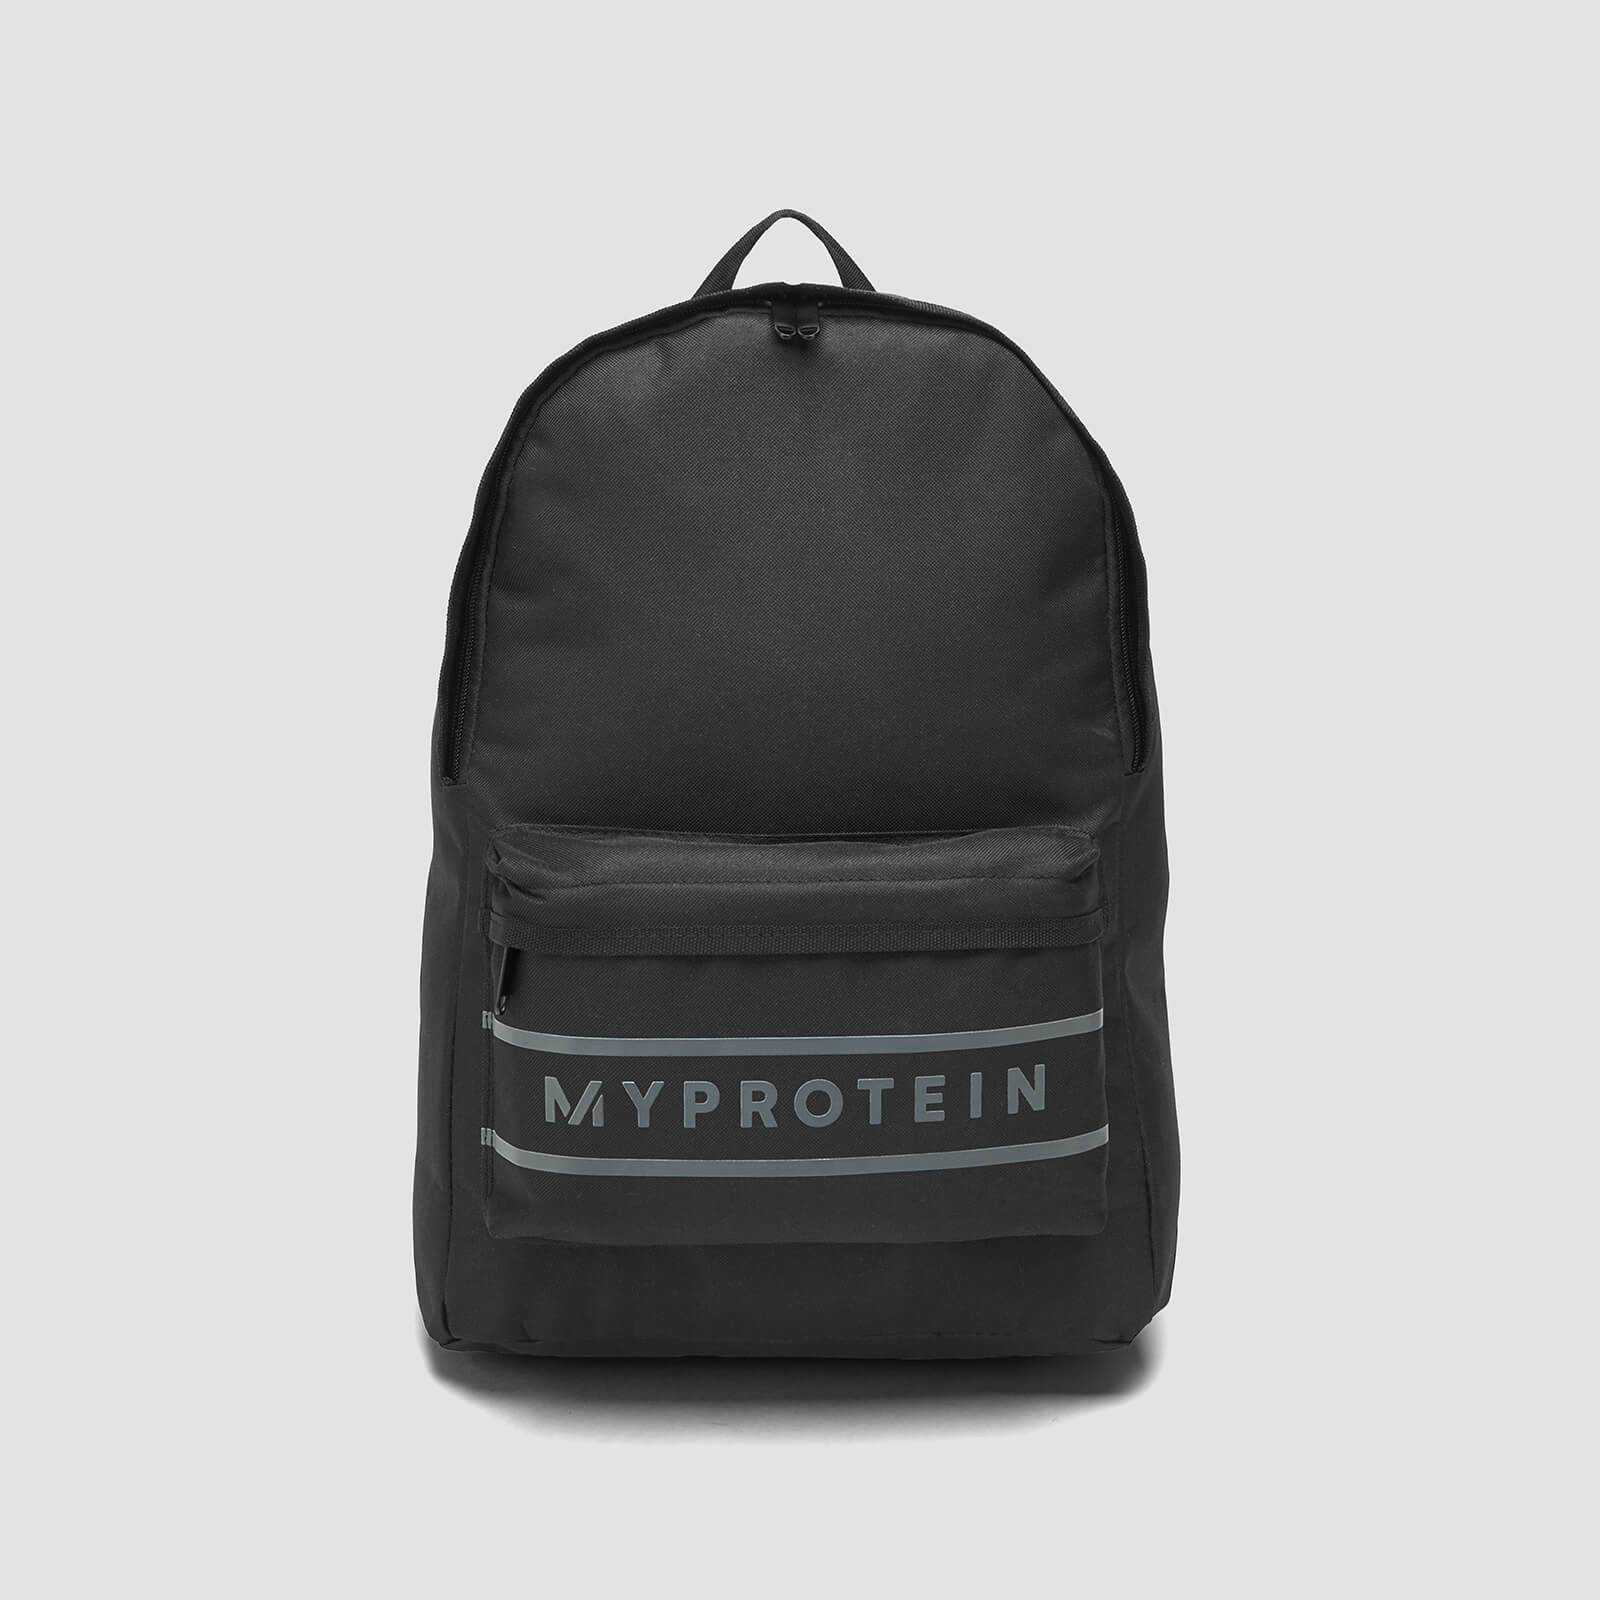 Myprotein MP Core Backpack - Black